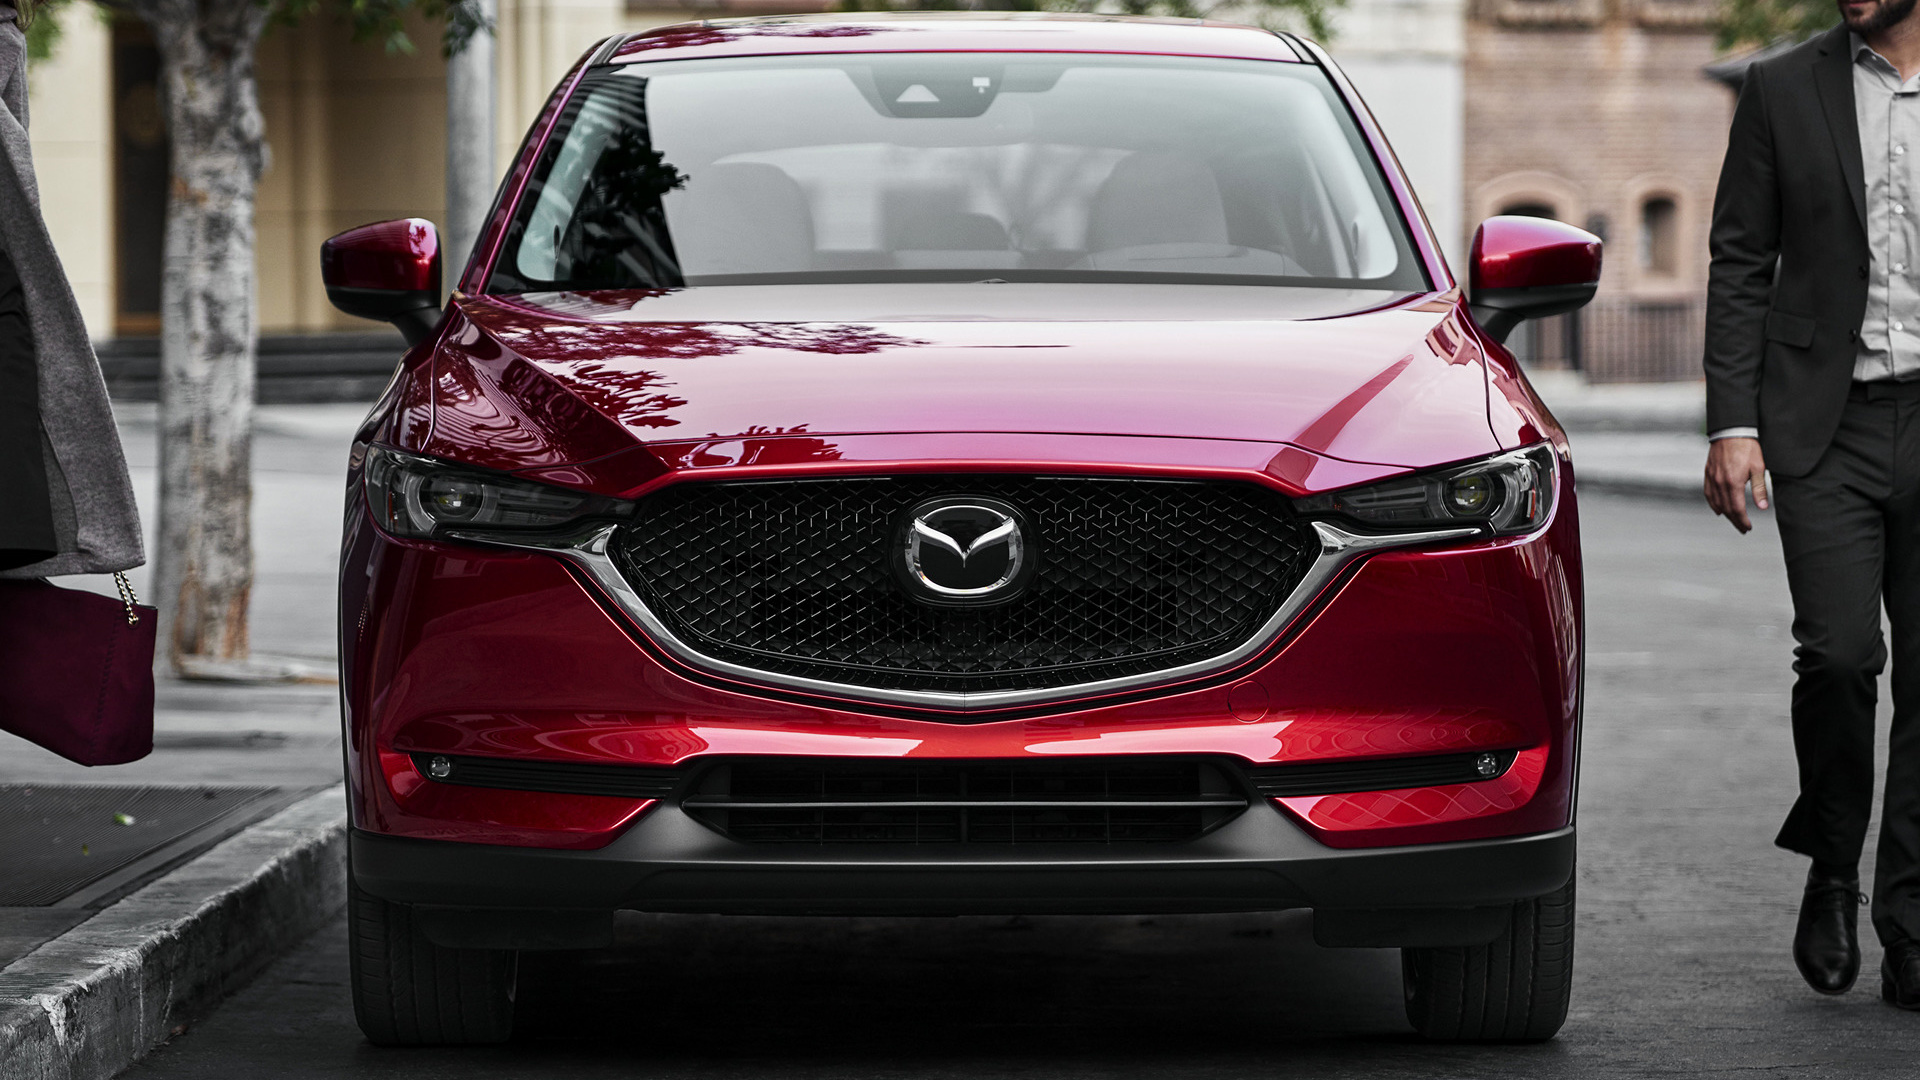 Mazda cx 5 2017 us wallpapers and hd images car pixel hd 169 voltagebd Choice Image